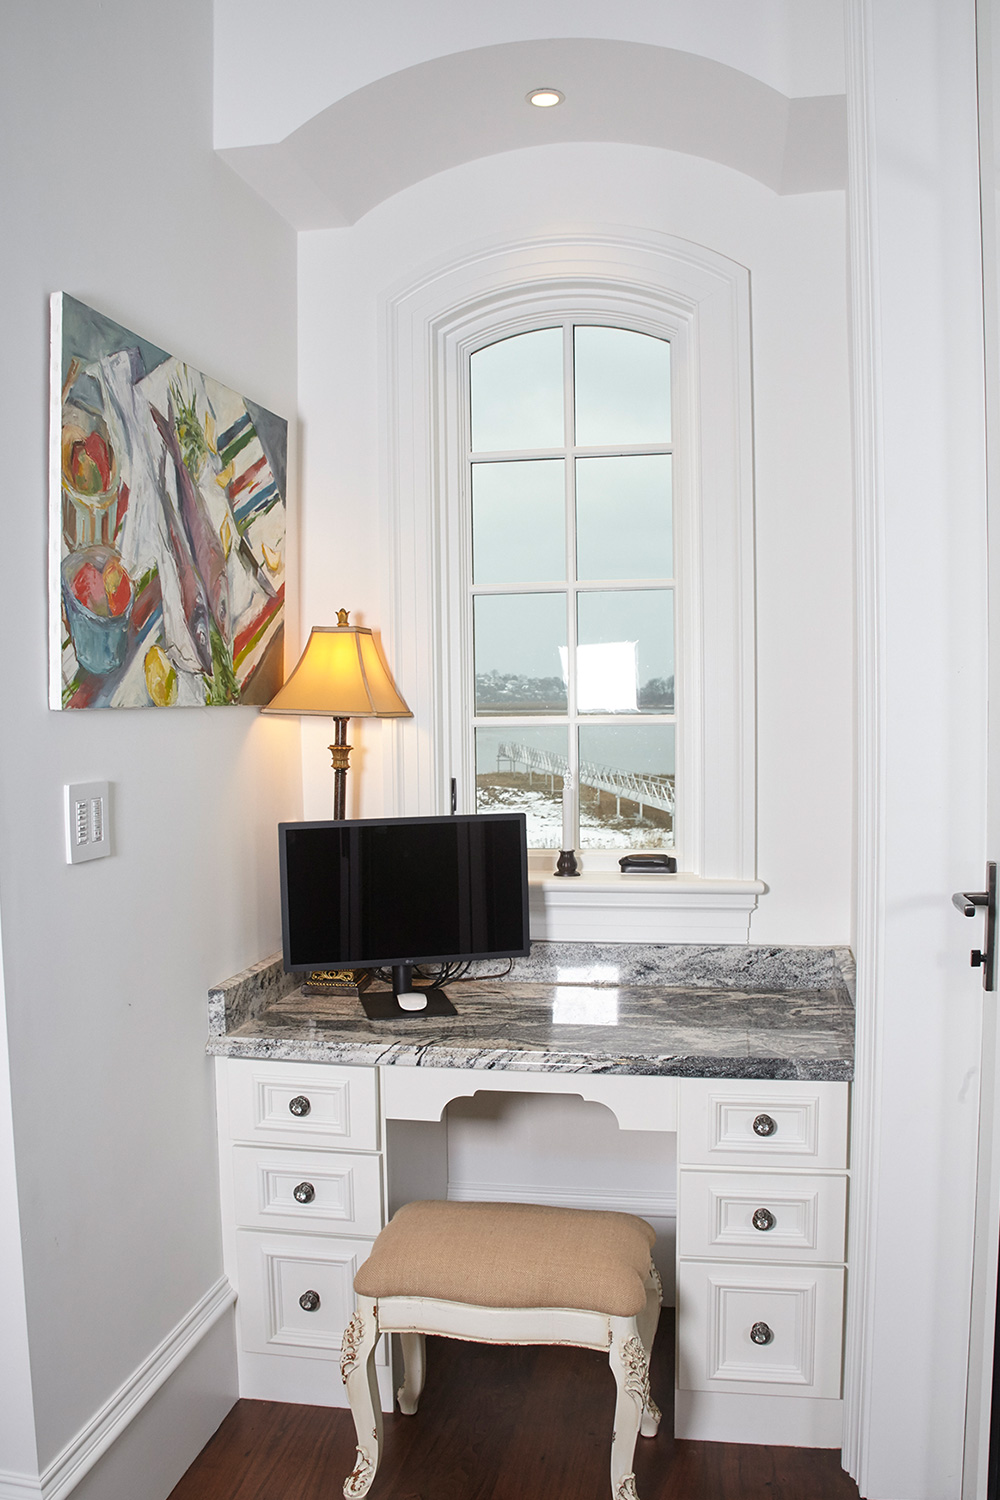 White Cabinets Built-In Office Desk